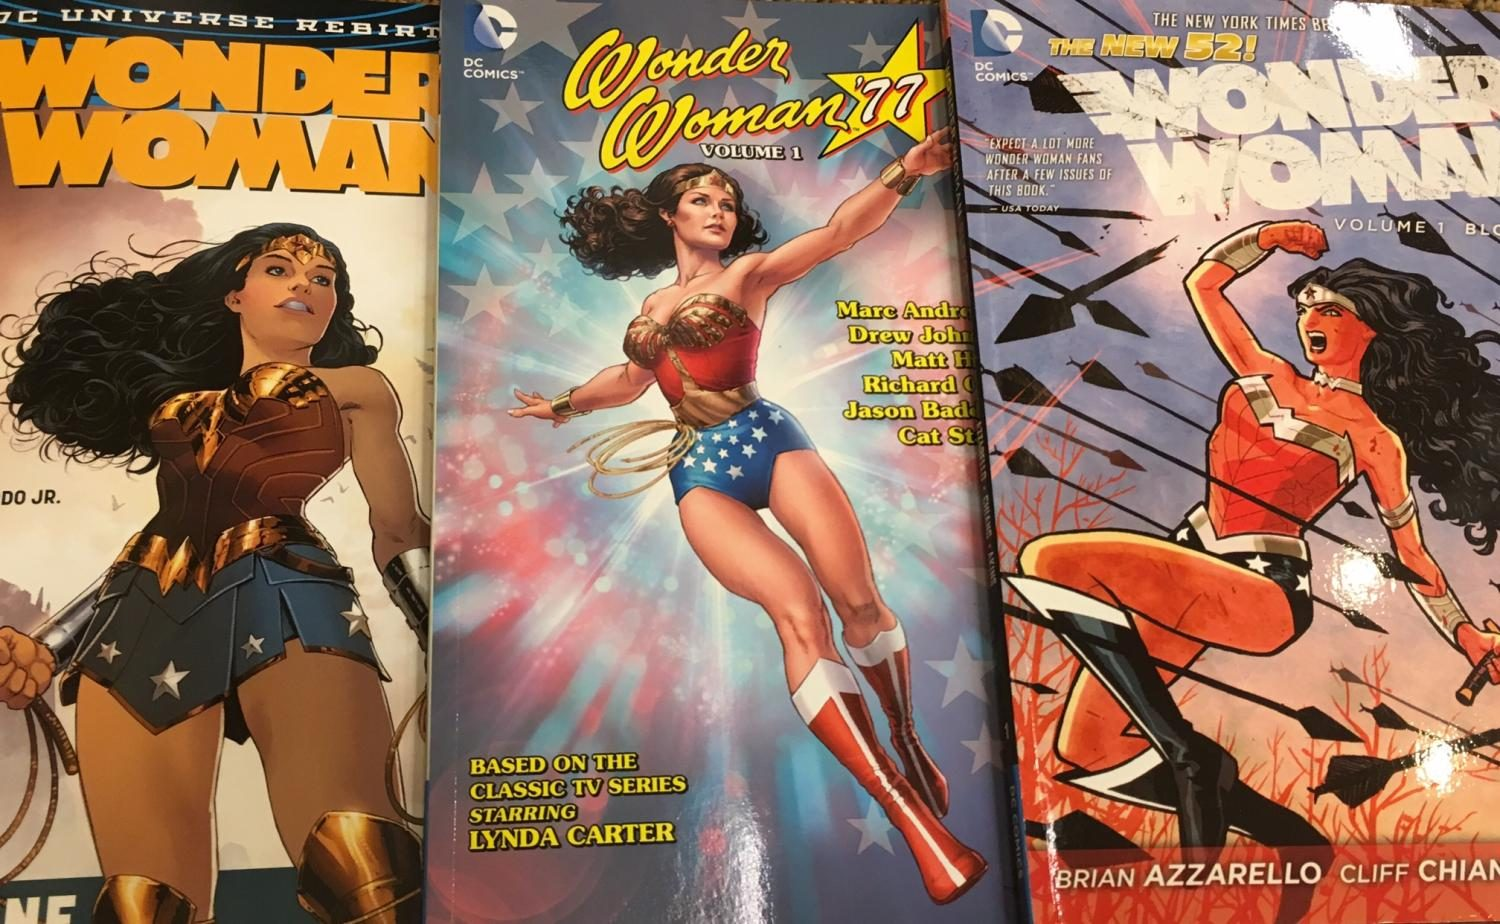 Sameera+Rachakonda+explains+how+Wonder+Woman+not+only+fights+villains%2C+but+also+stereotypes.